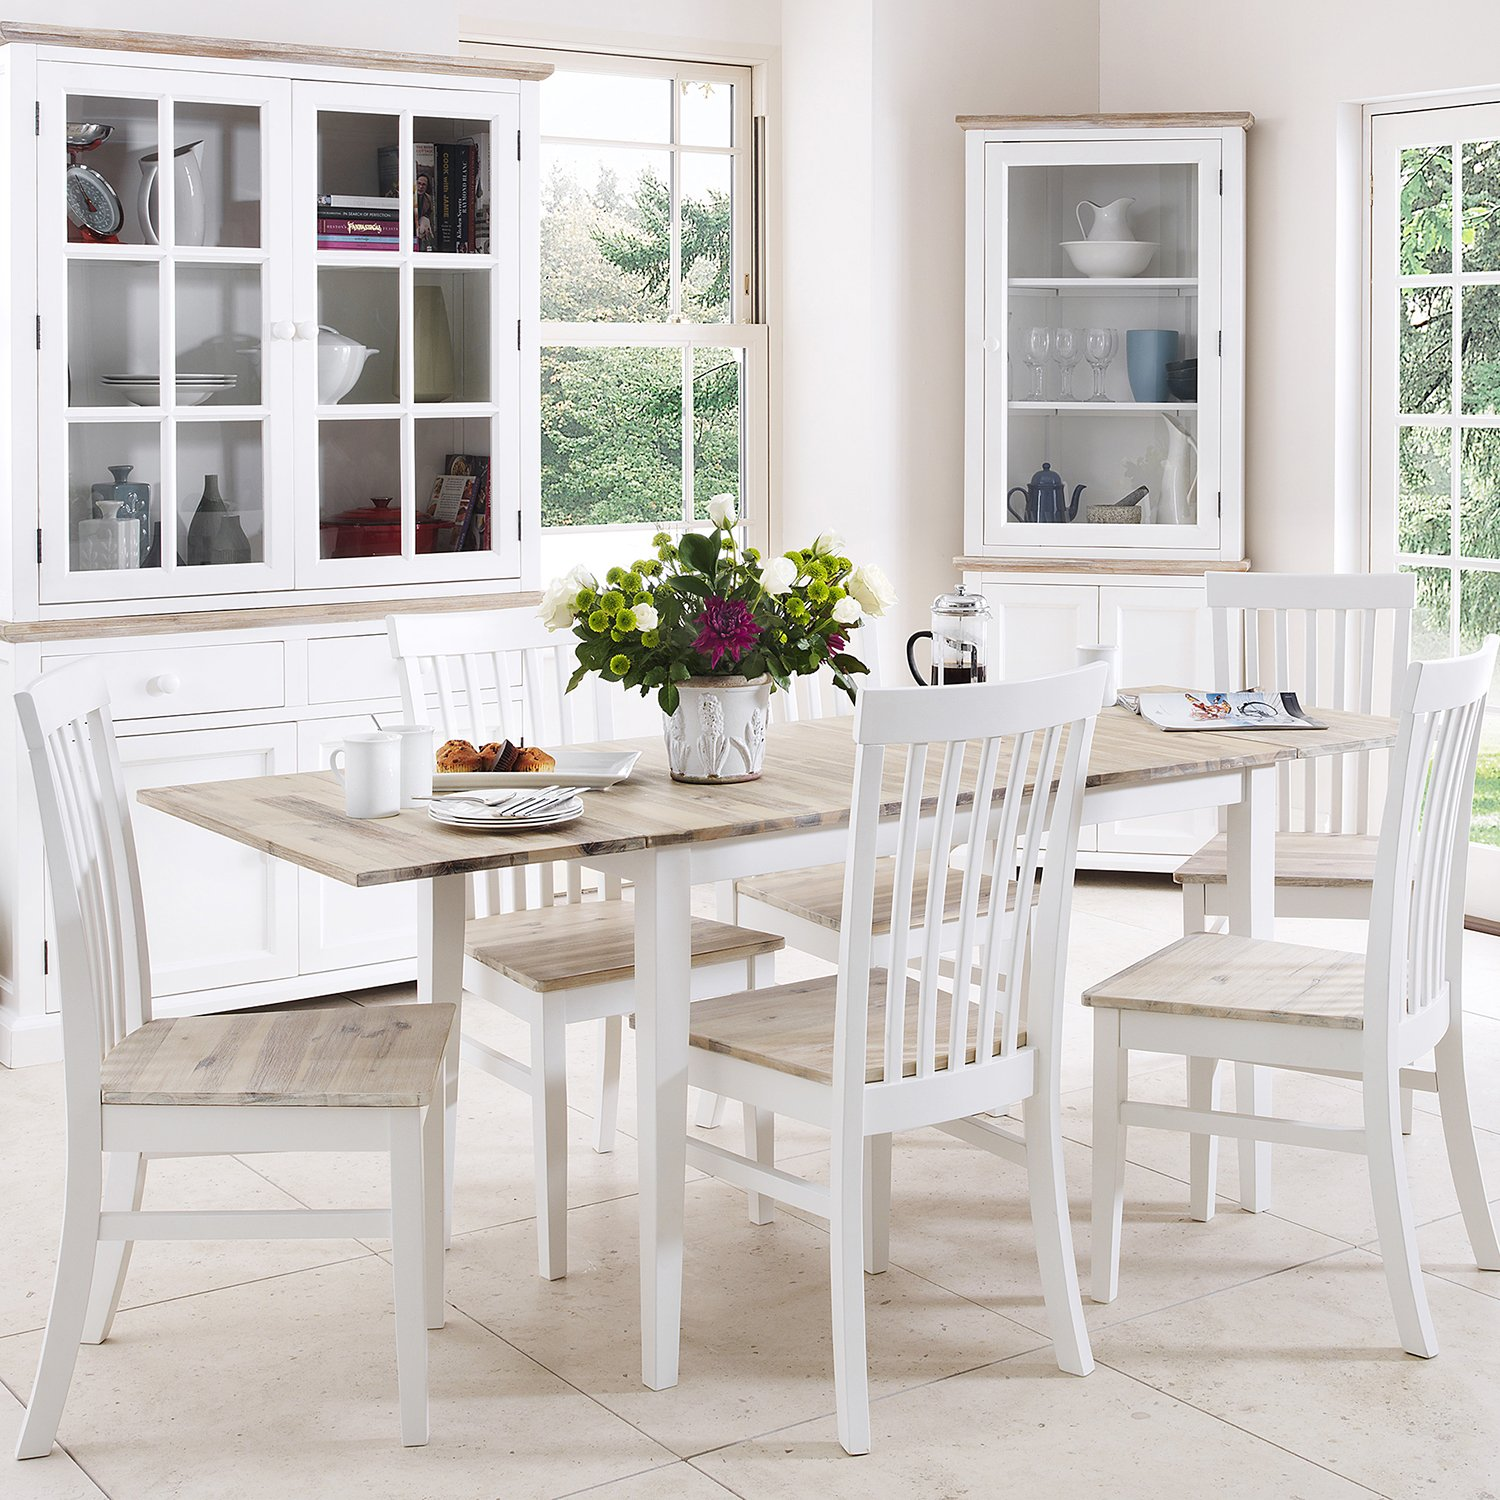 White Table Uk Part - 47: Florence Extending Table And 6 Chairs Set. Kitchen Dining Table And Chair  Set In White Colour With Limed Hardwood Table Top: Amazon.co.uk: Kitchen U0026  Home